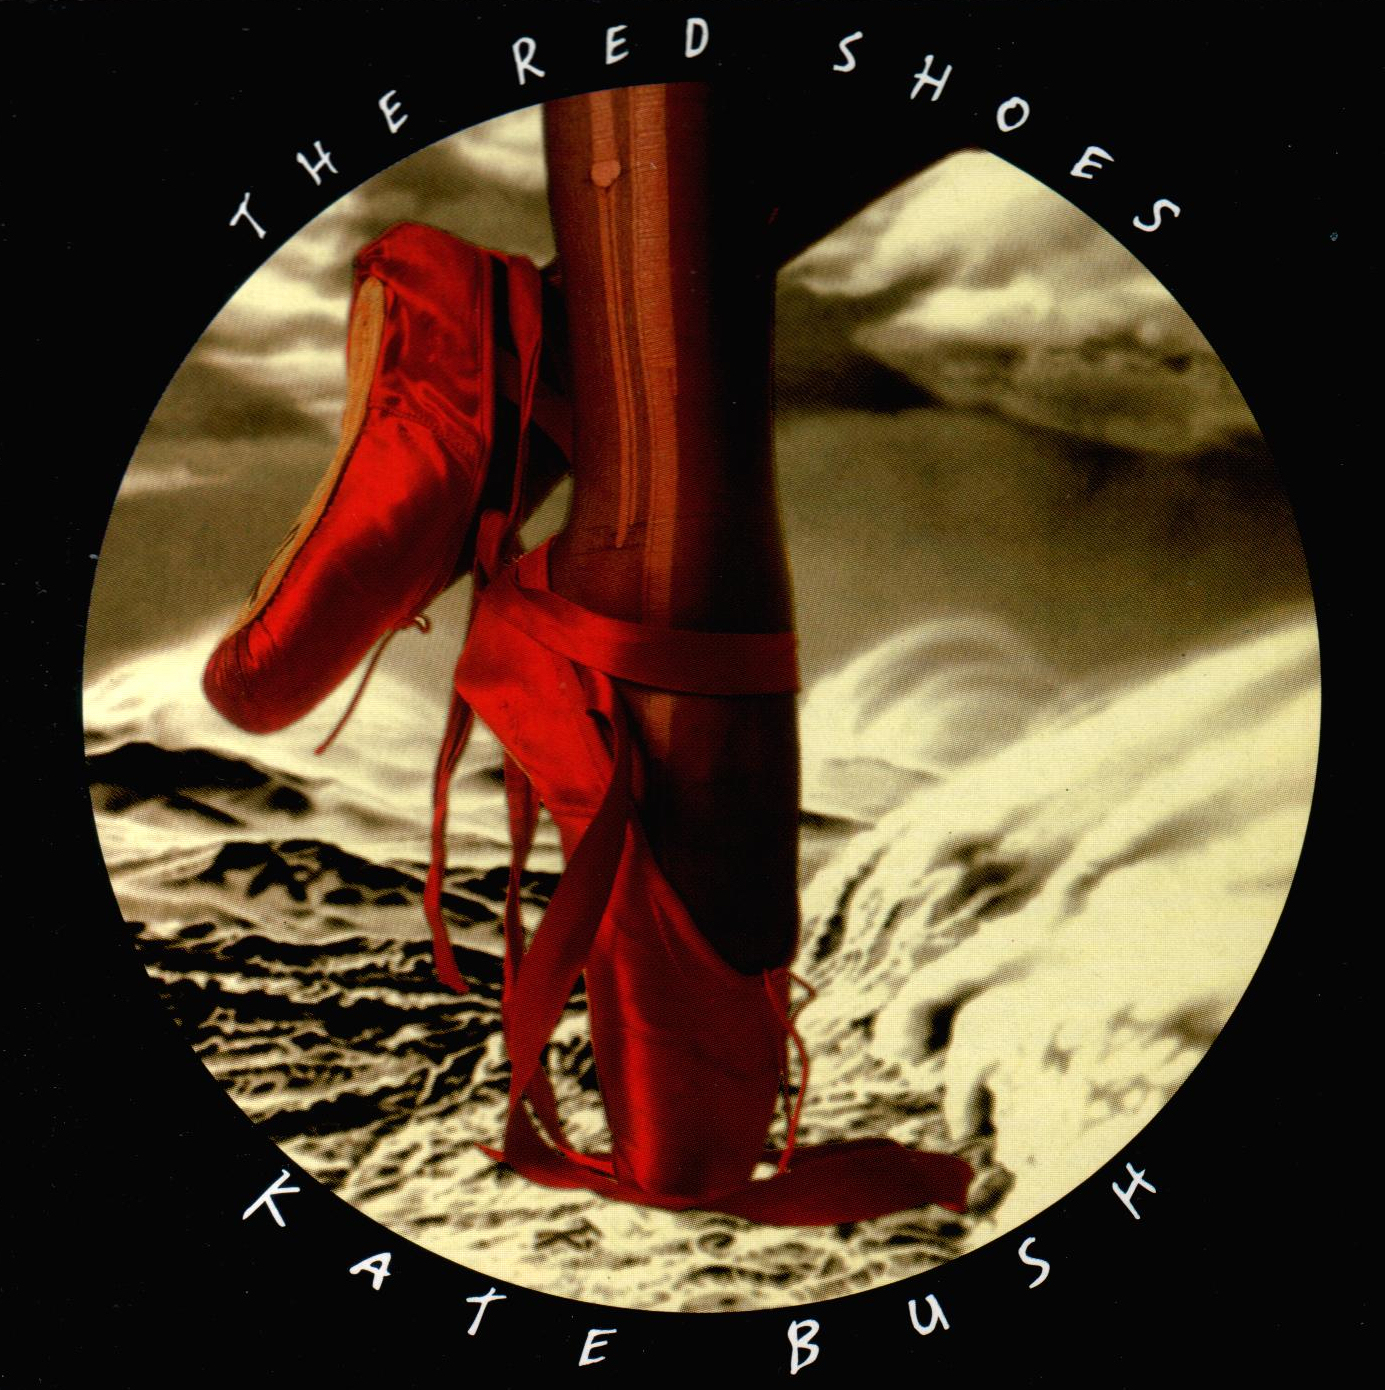 The Red Shoes Kate Bush Album